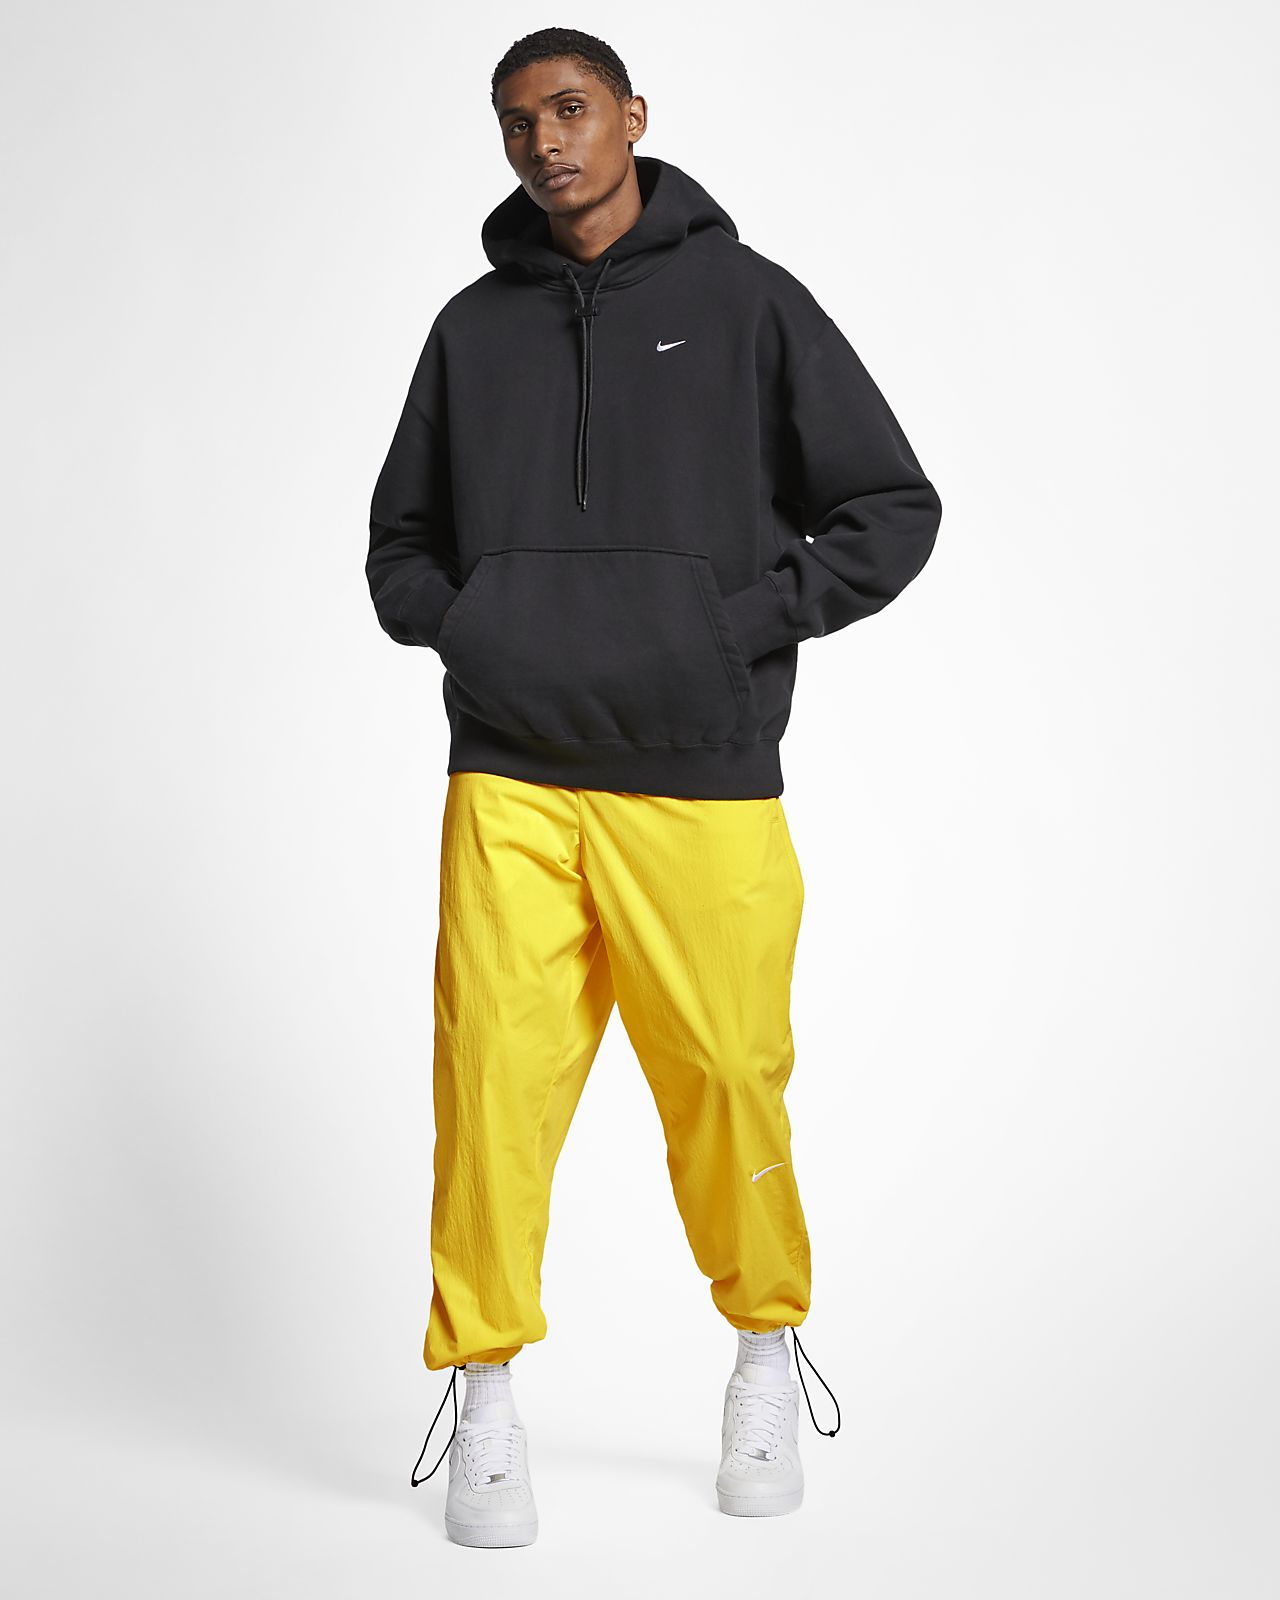 Pantalon Homme Nikelab Collection Pour Pantalon Nikelab Collection Pour rdoeWQCBEx